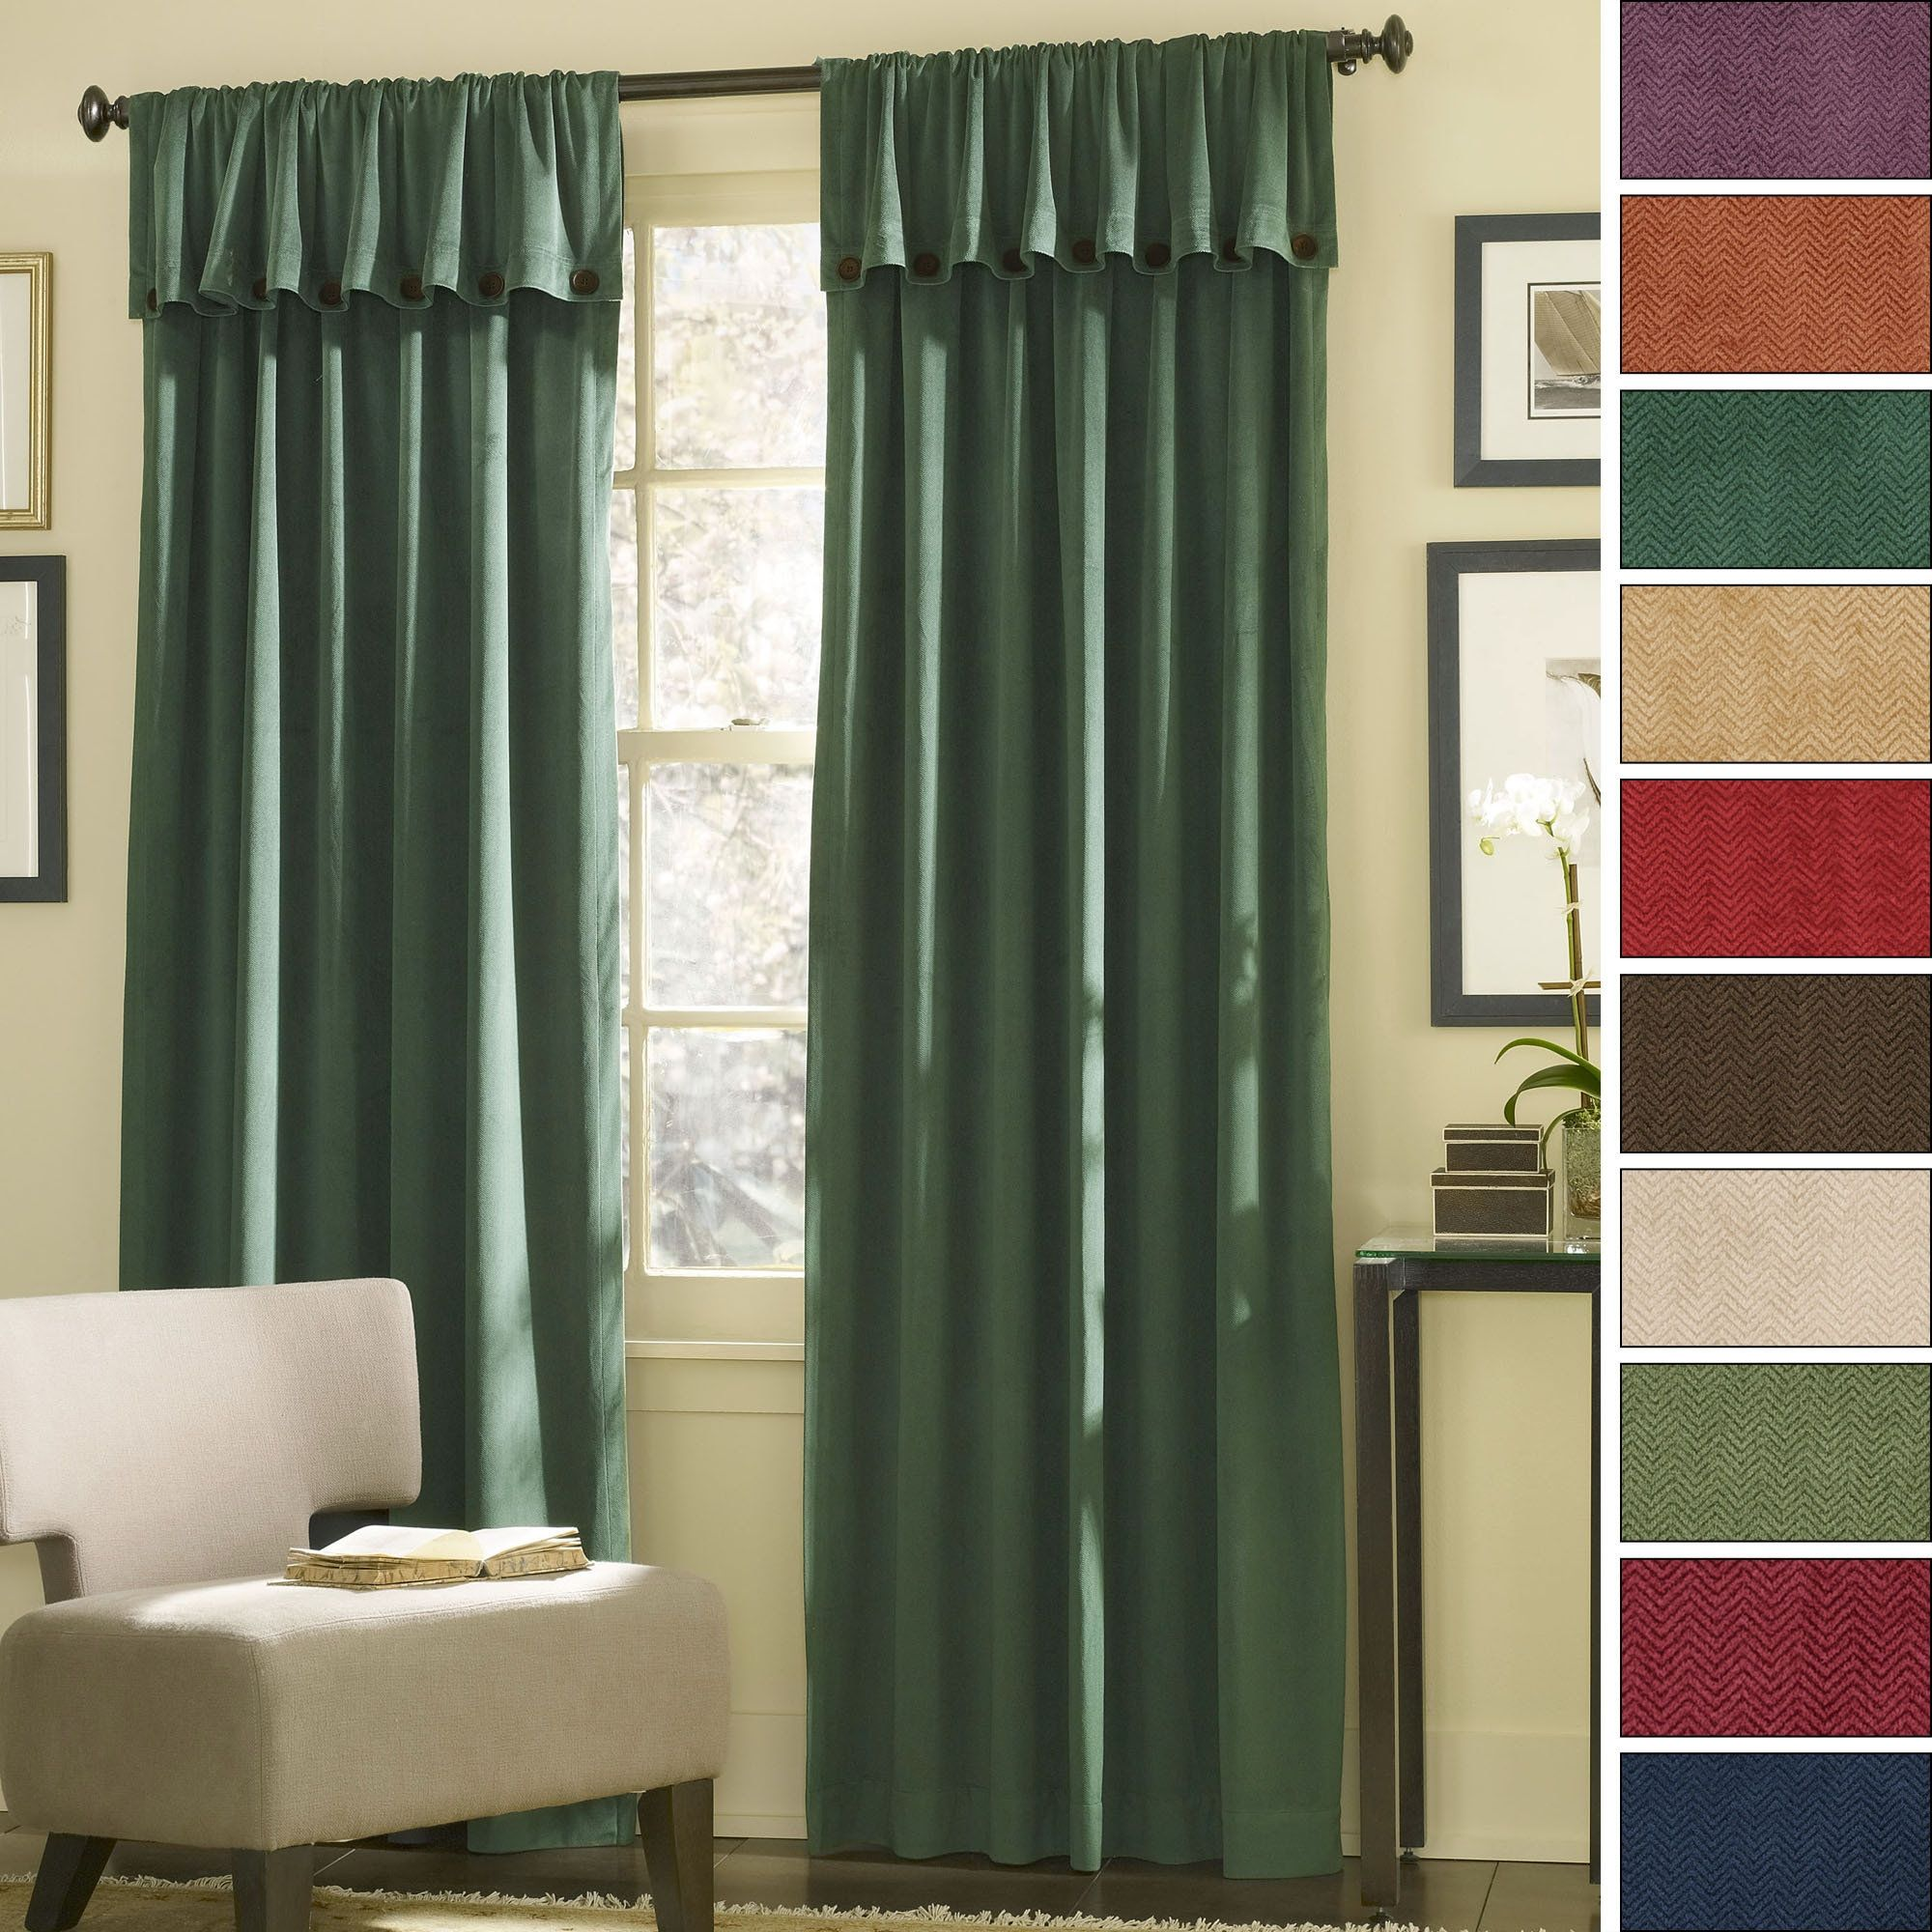 Double Pocket Door Curtains